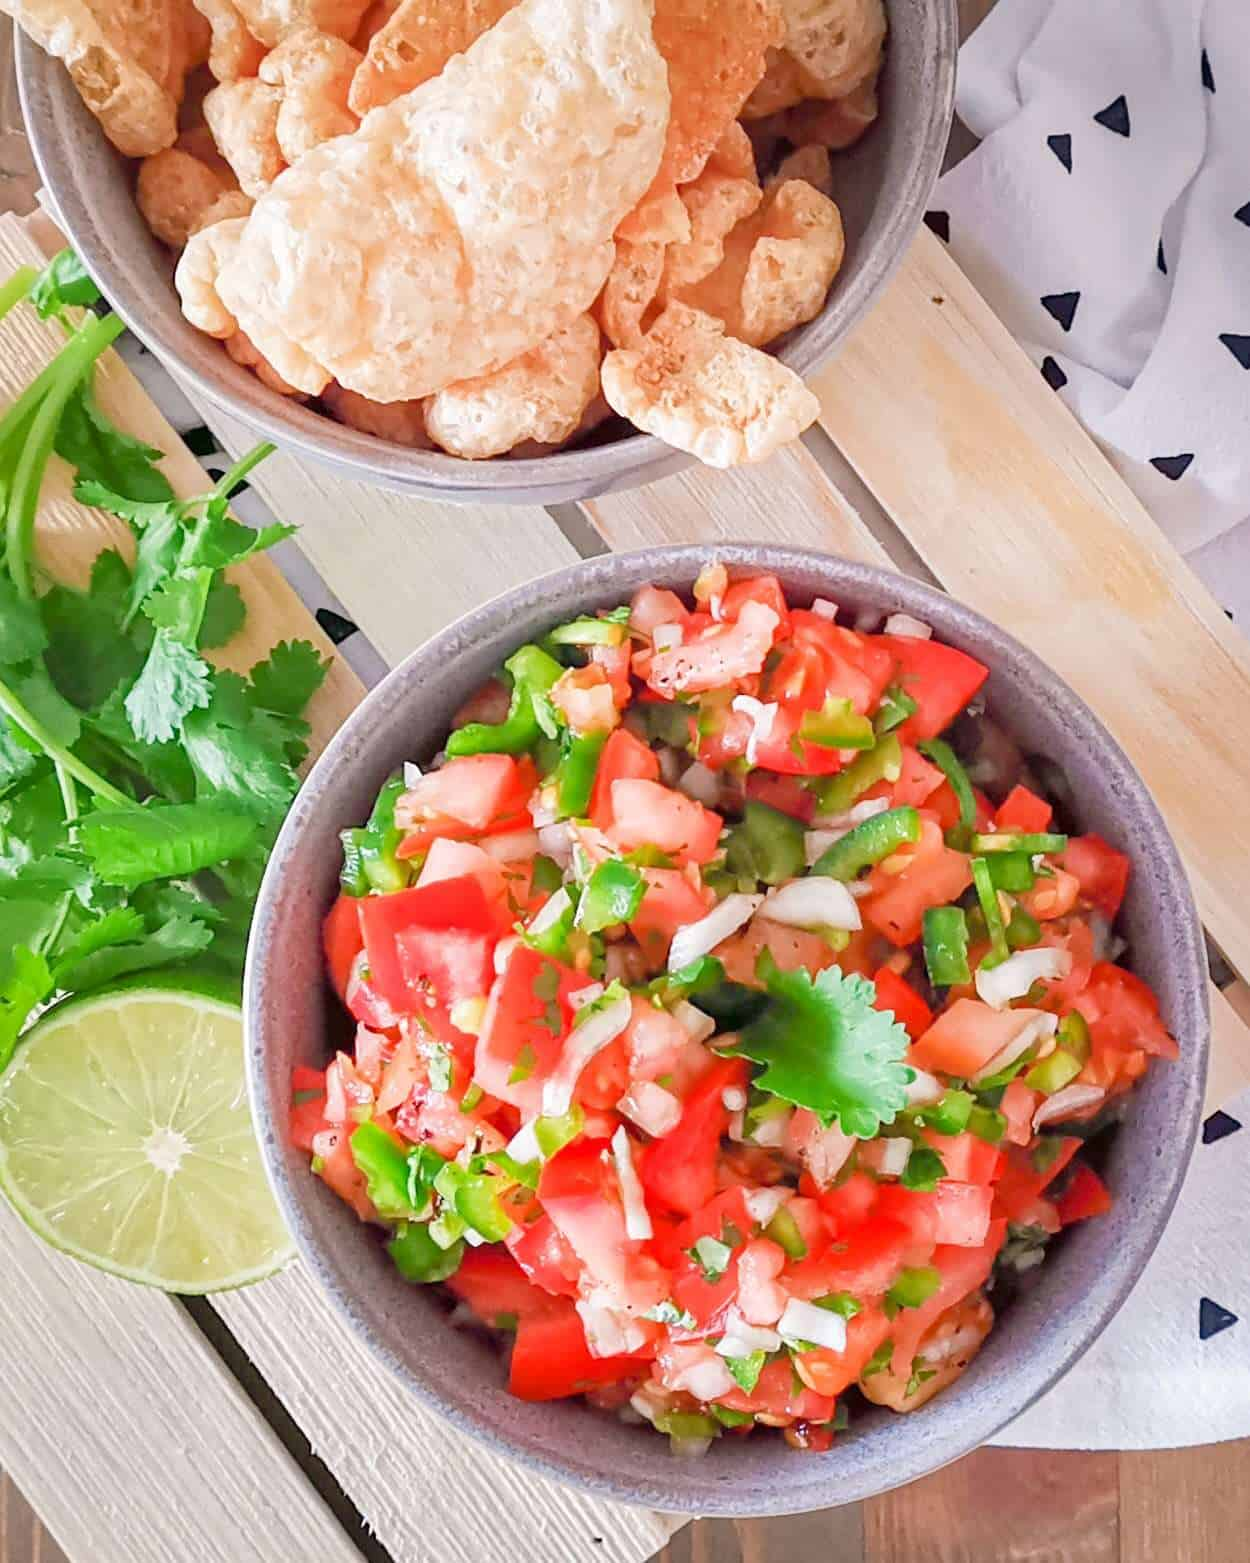 Keto Pico De gallo in a bowl with pork rinds for dipping